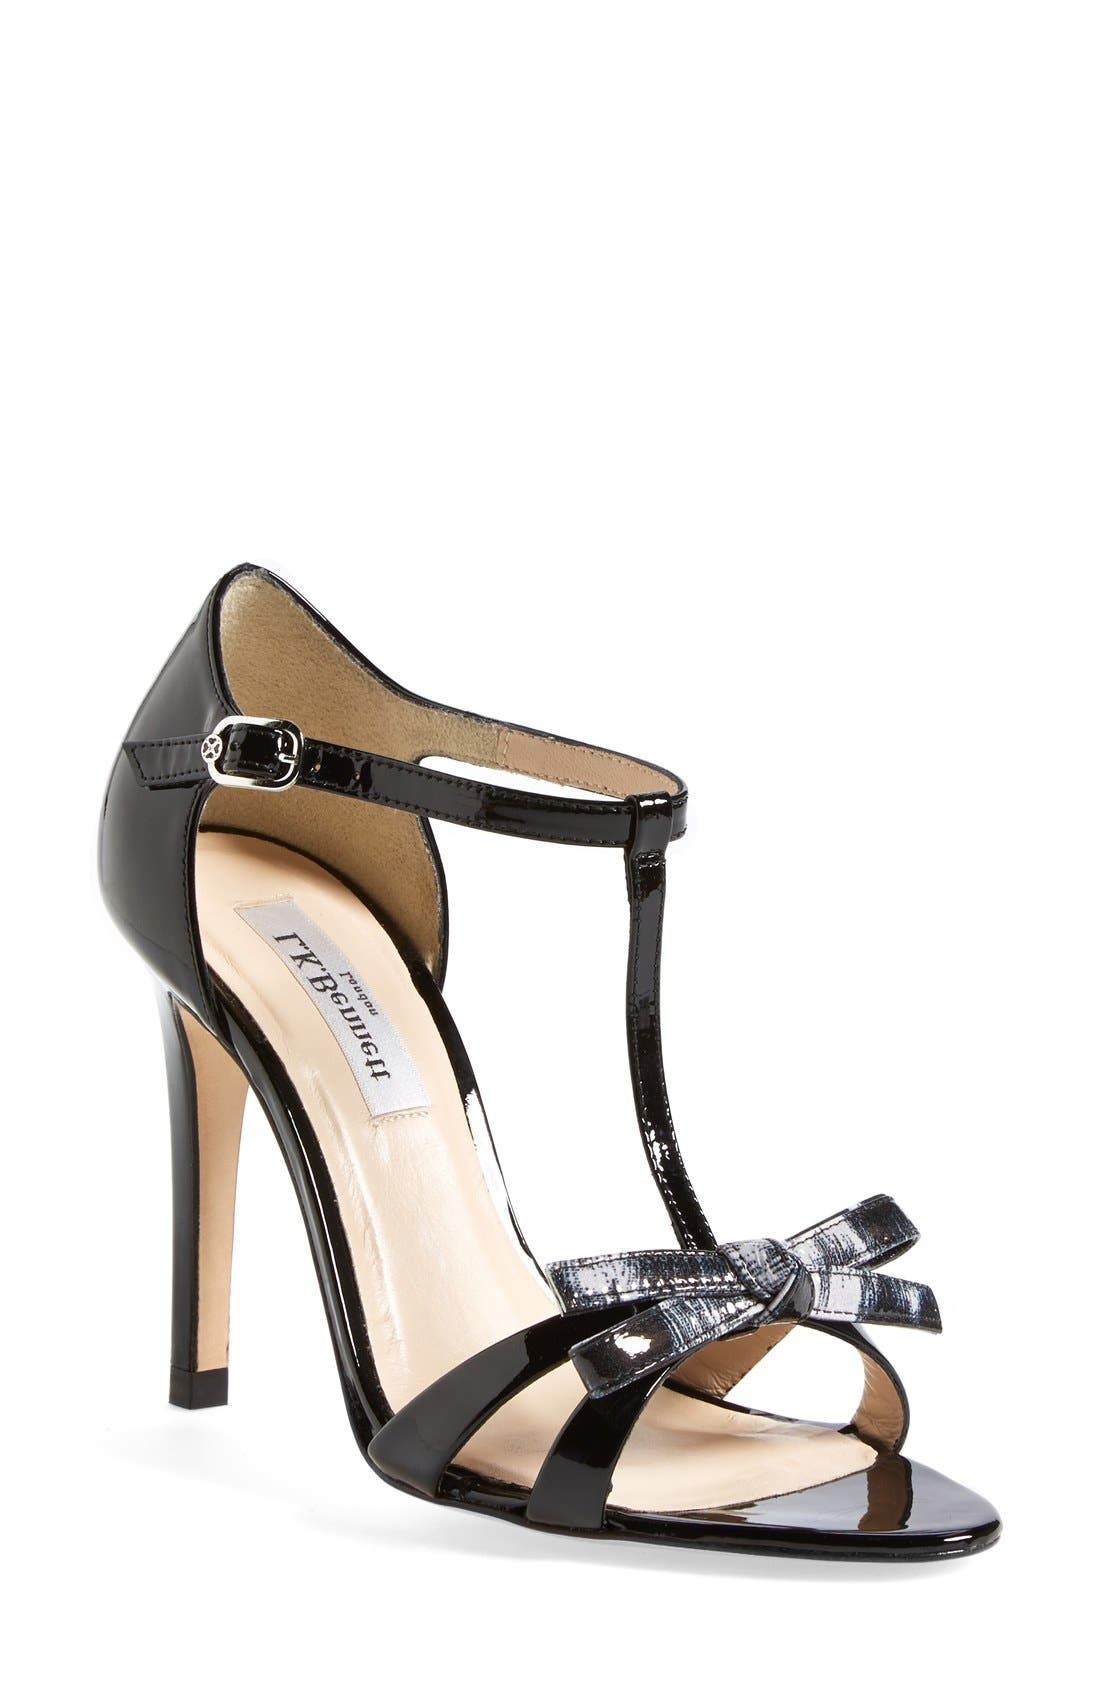 Alternate Image 1 Selected - L.K. Bennett 'Anya' T-Strap Leather Sandal (Women)